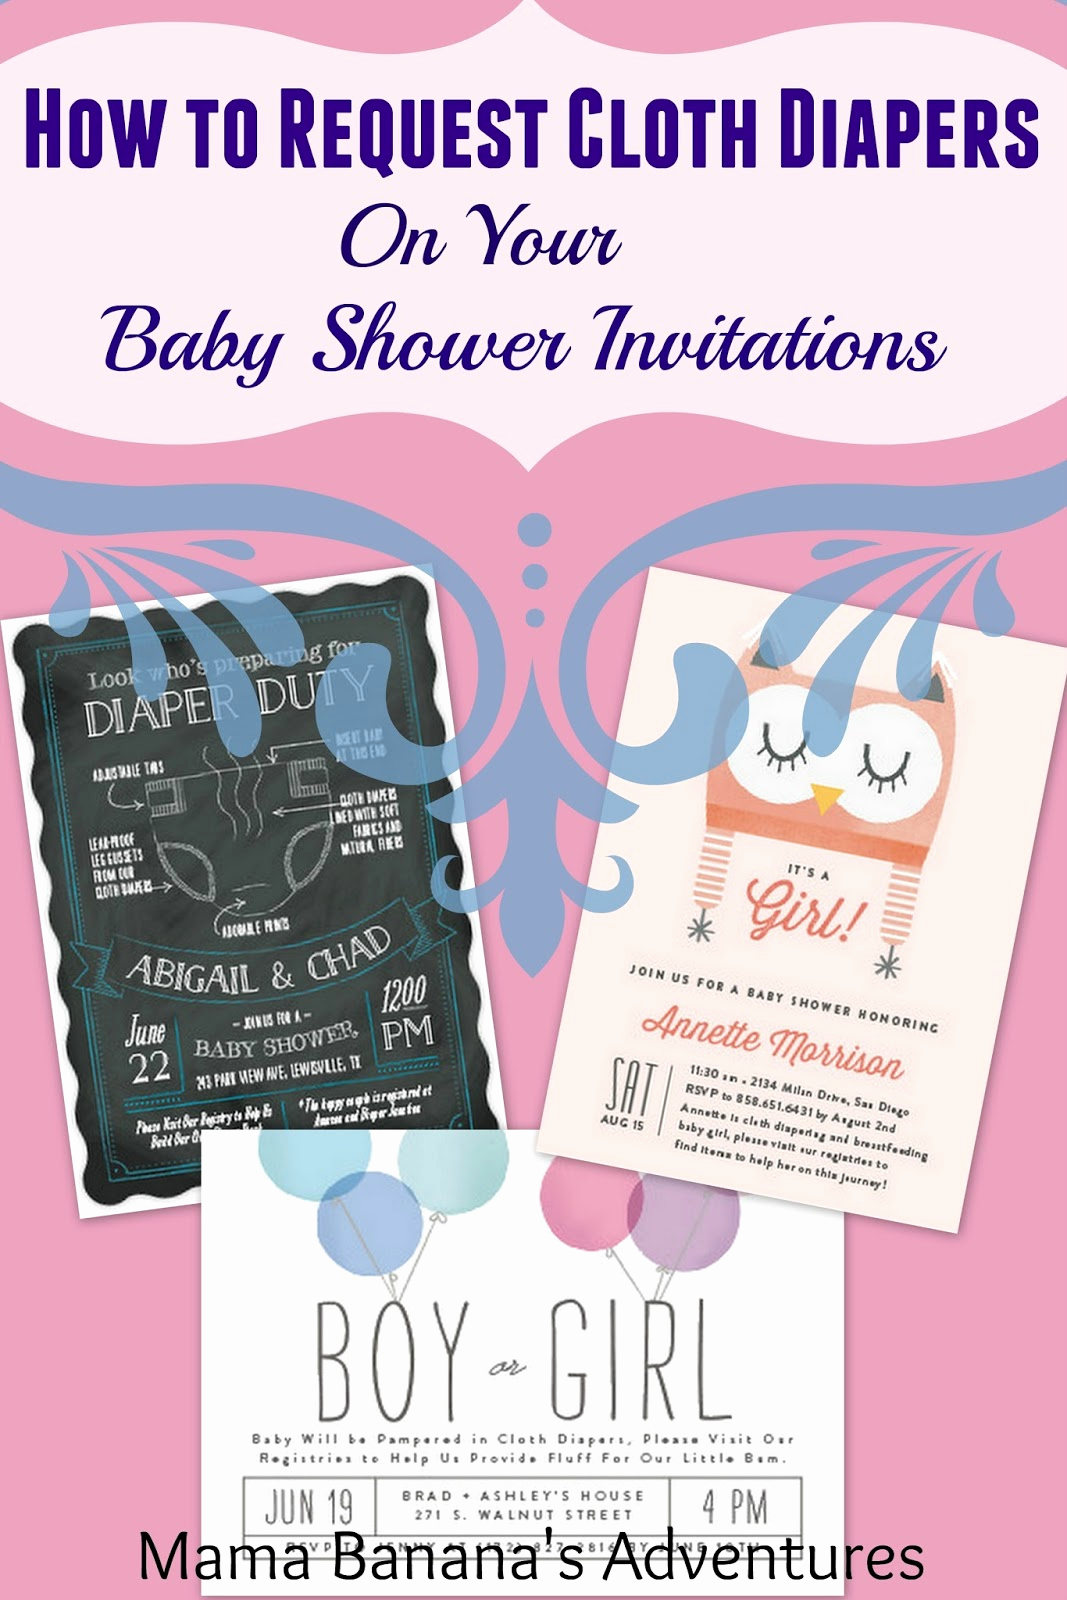 Cloth Diaper Baby Shower Invitation Unique How to Request Cloth Diapers On Your Baby Shower